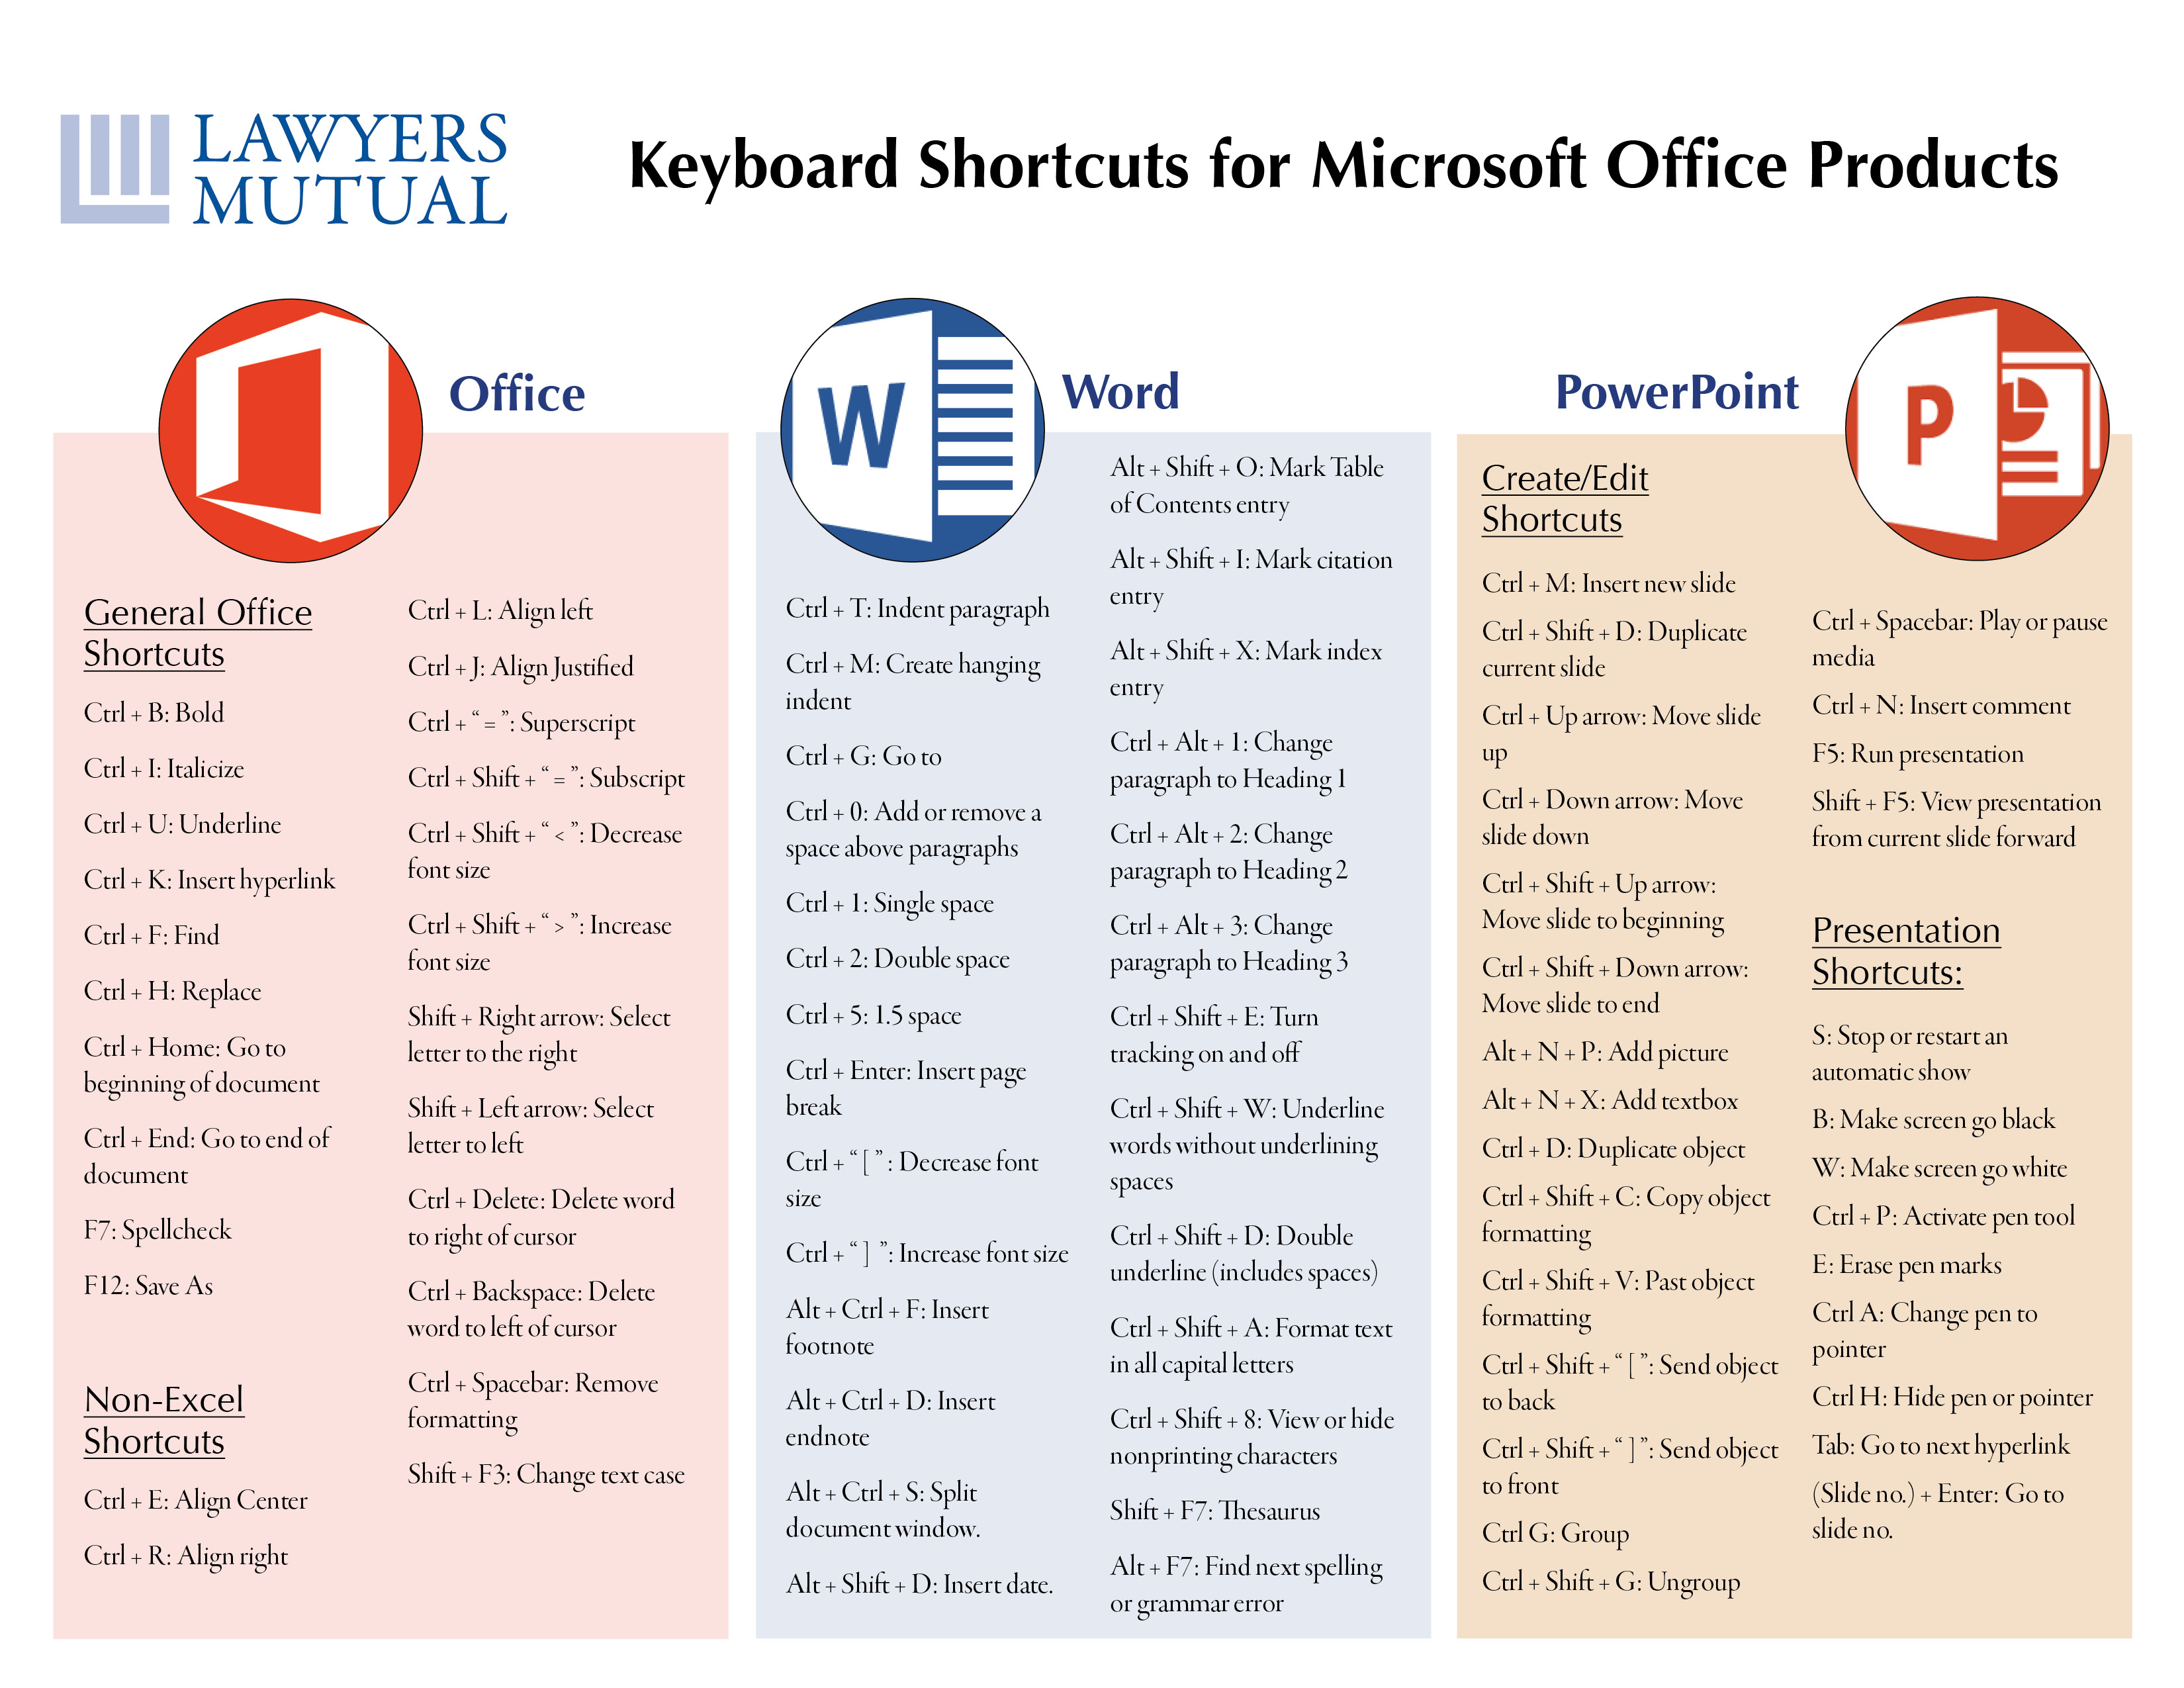 Keyboard Shortcuts: Productivity at Your Fingertips - Lawyers Mutual